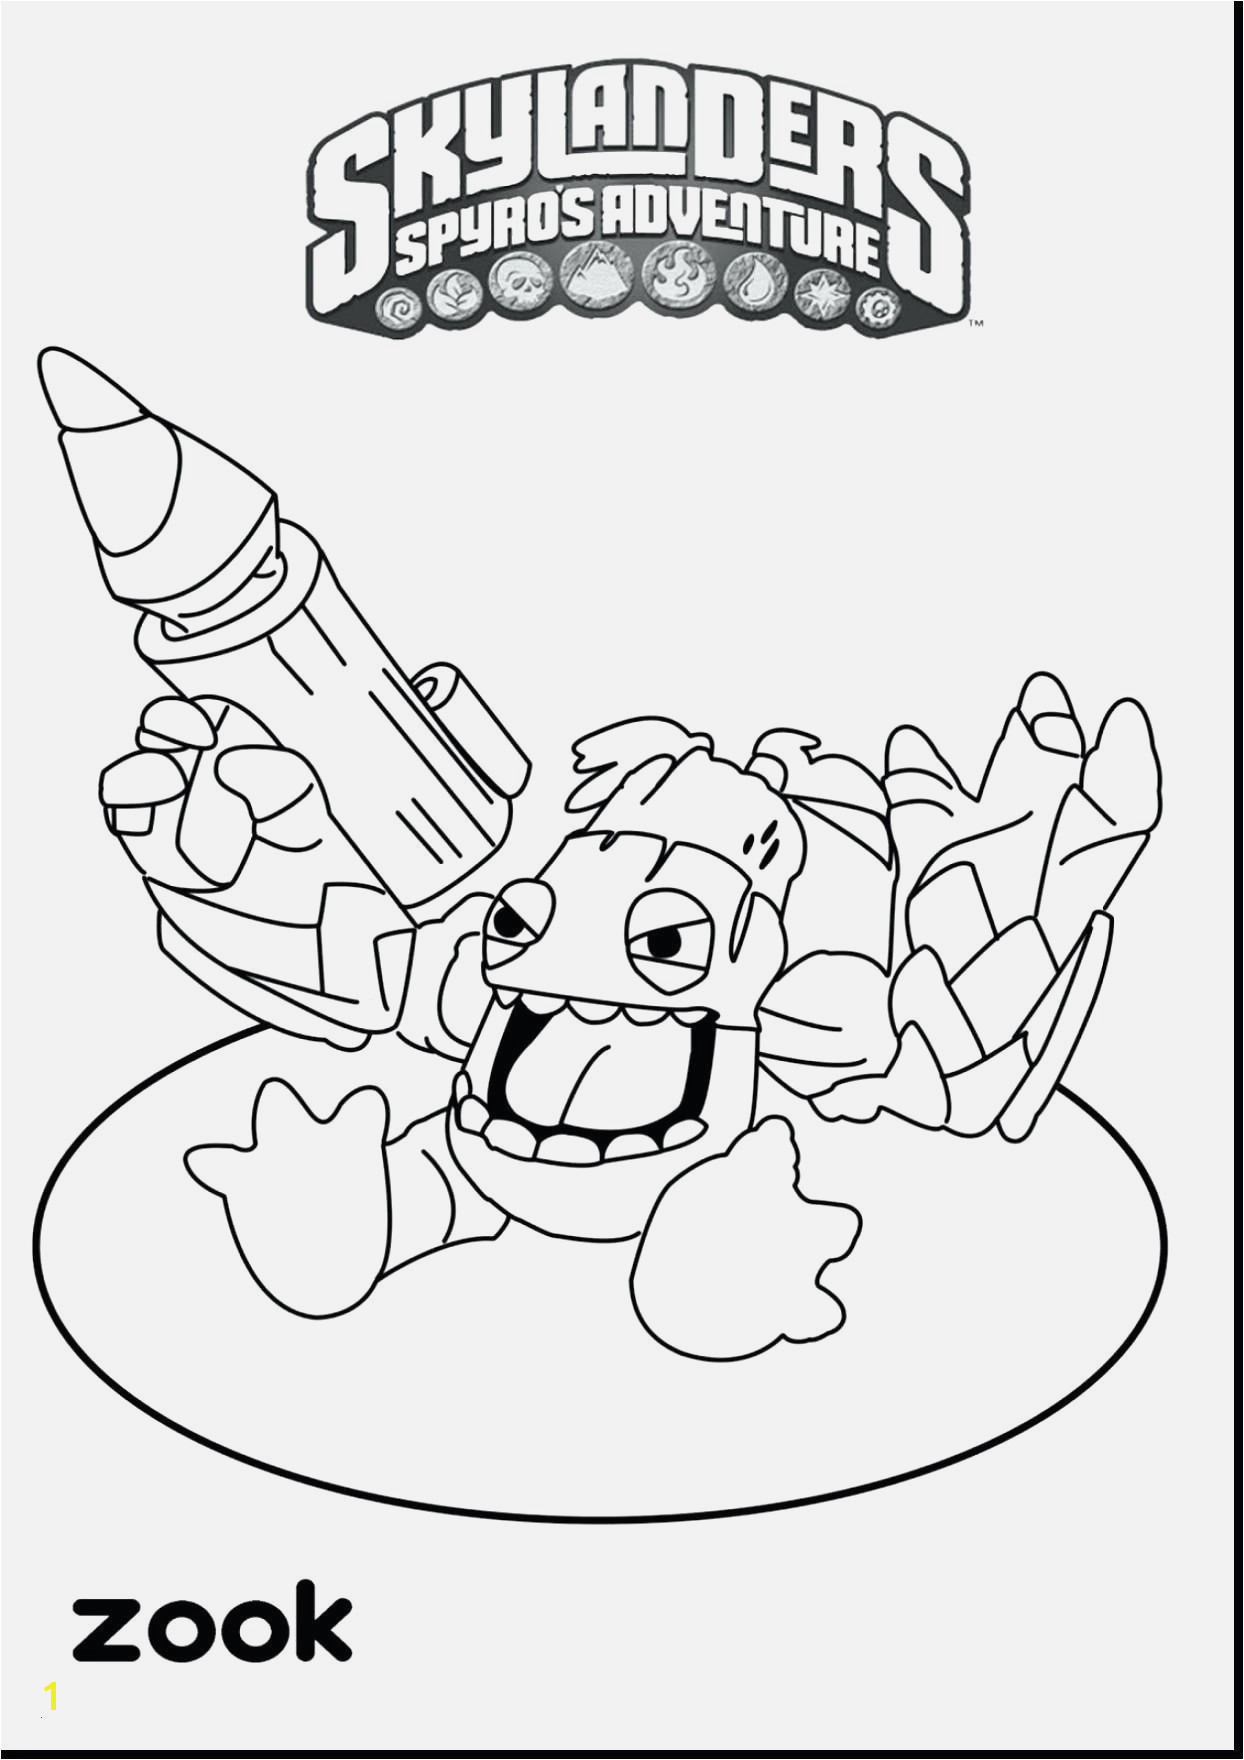 Free Coloring Pages for Adults Printable Disney Coloring Download and Print for Free Coloring Pages Line New